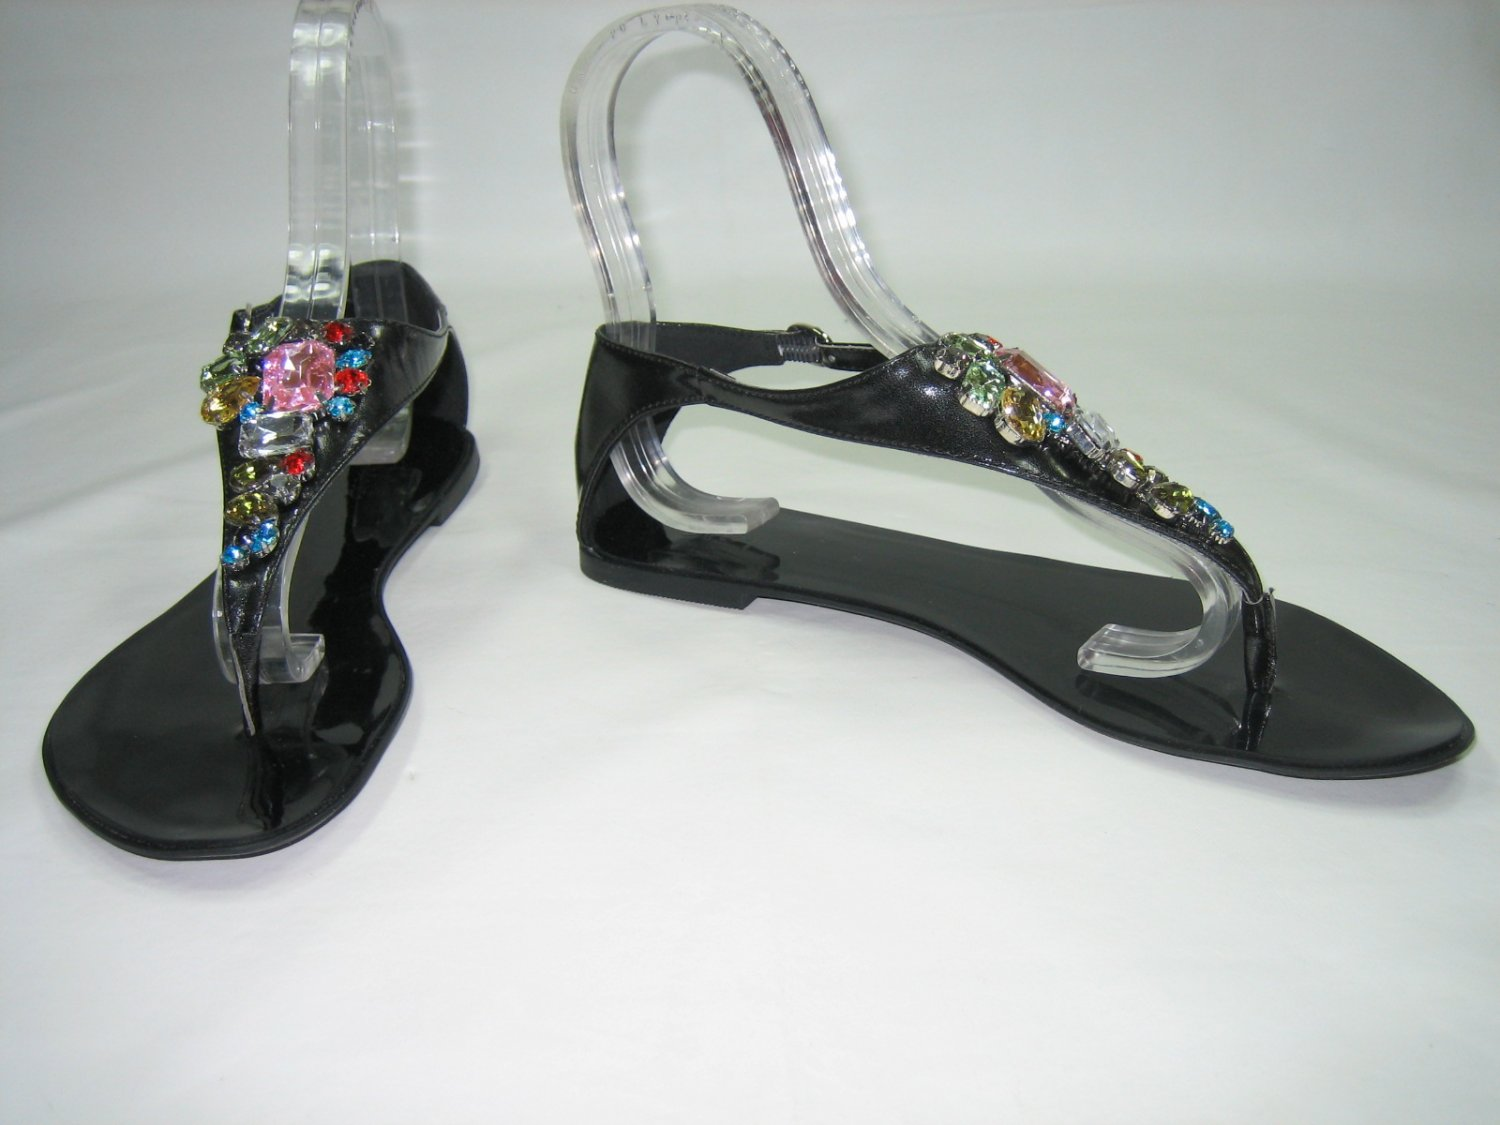 Bejeweled decorated sandals flats gladiator thongs black size 6.5